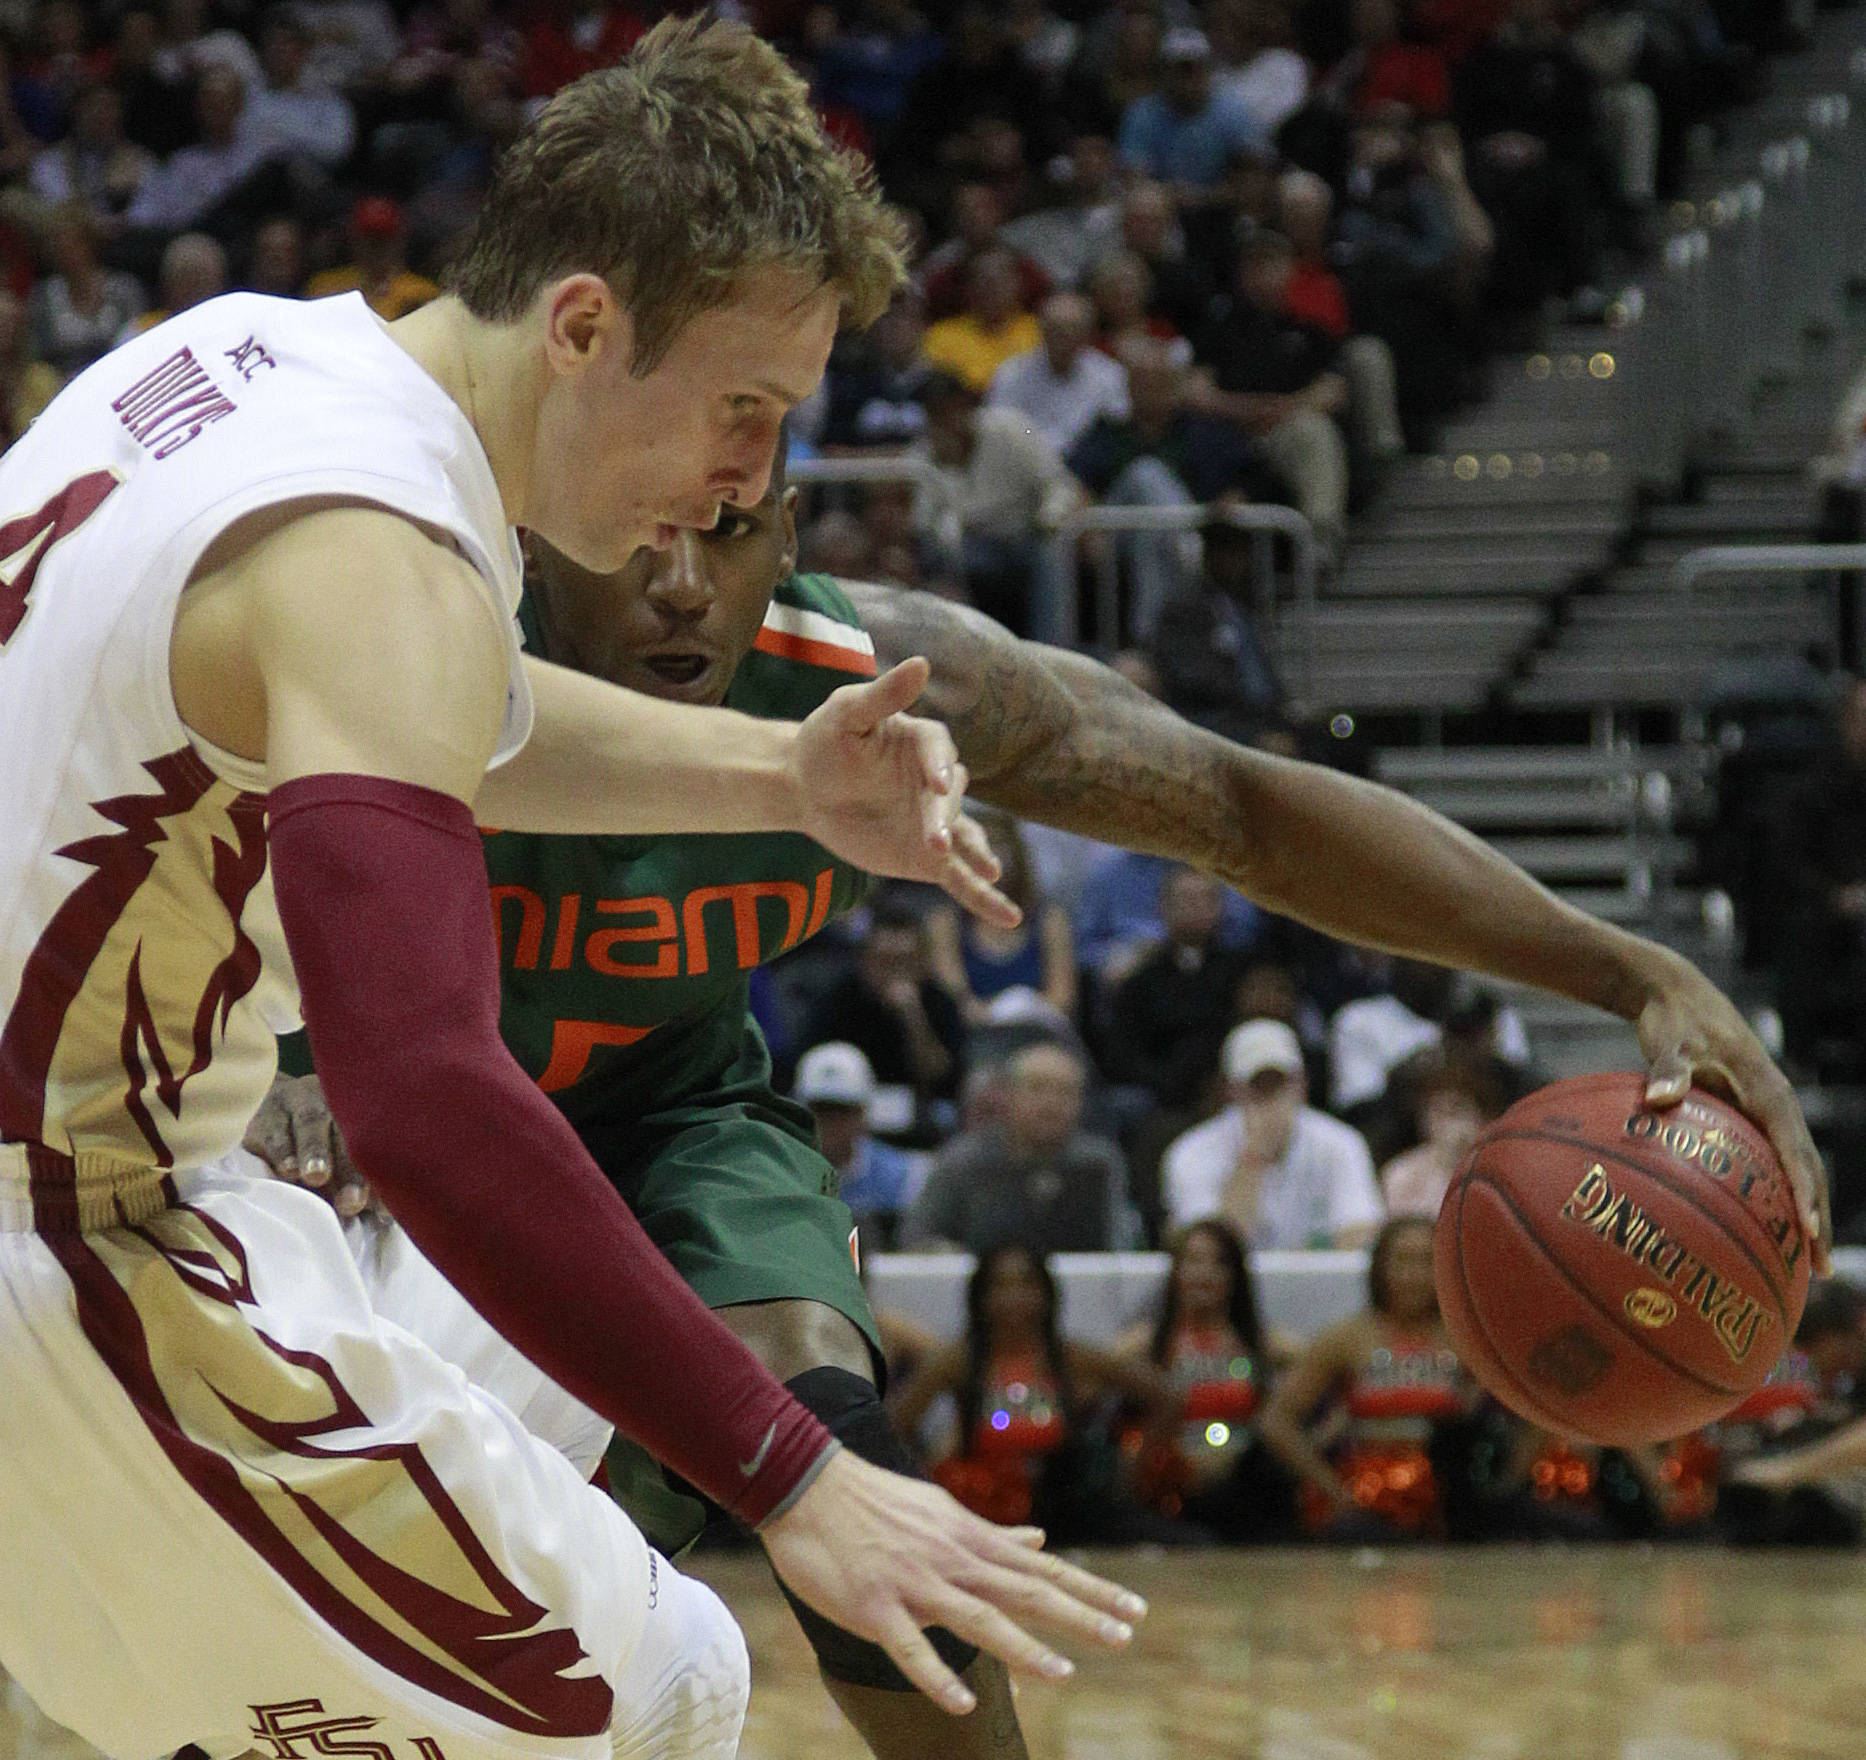 Miami guard/forward DeQuan Jones (5) works the ball against Florida State guard Deividas Dulkys (4) during the first half of an NCAA college basketball game in the quarterfinals of the Atlantic Coast Conference tournament, Friday, March 9, 2012, in Atlanta. (AP Photo/John Bazemore)